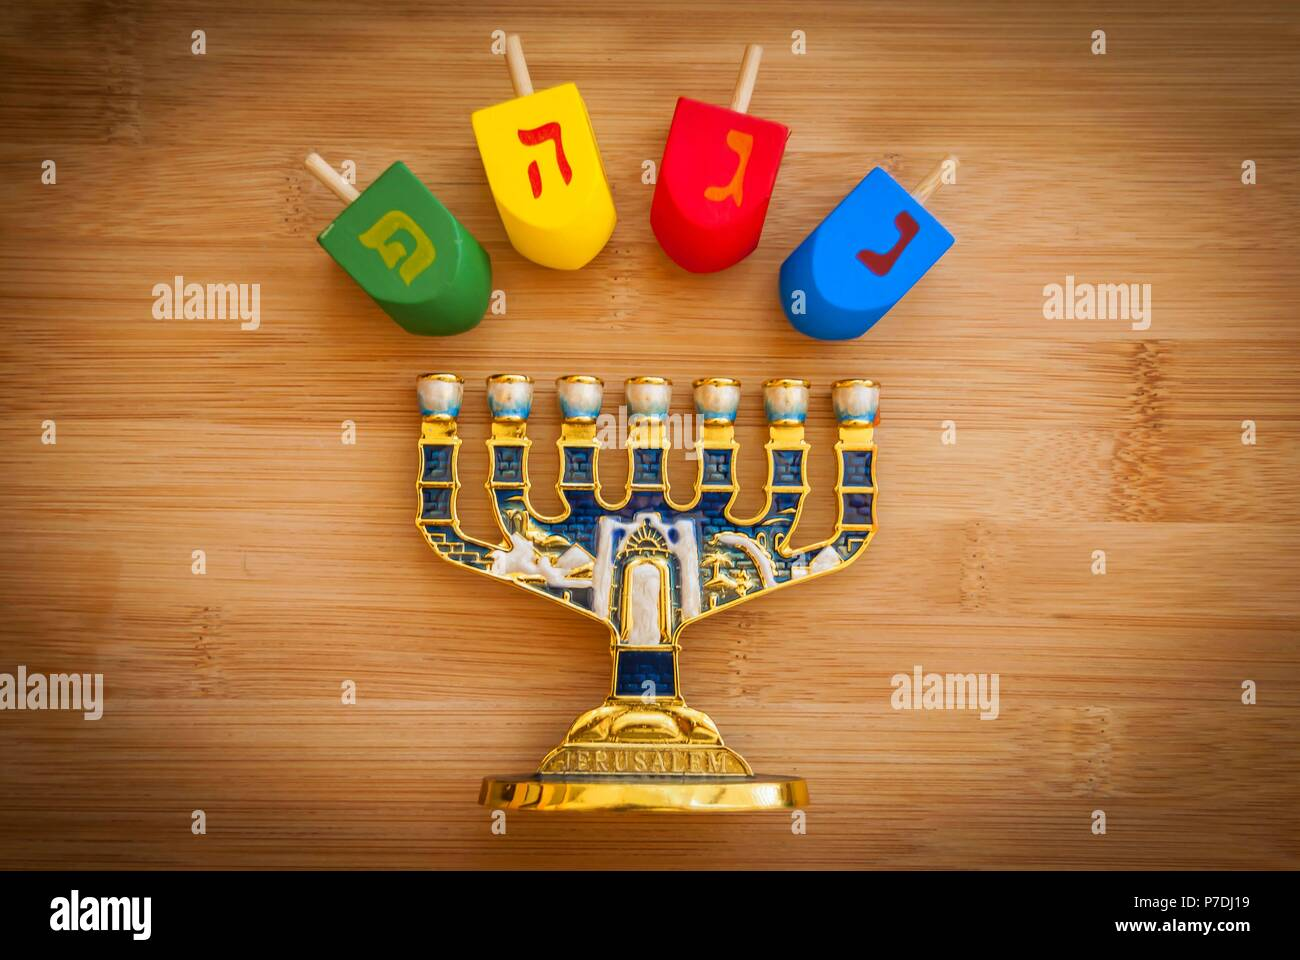 The Jewish Hanukkah Holiday Concept Stock Image Hebrew Letters On